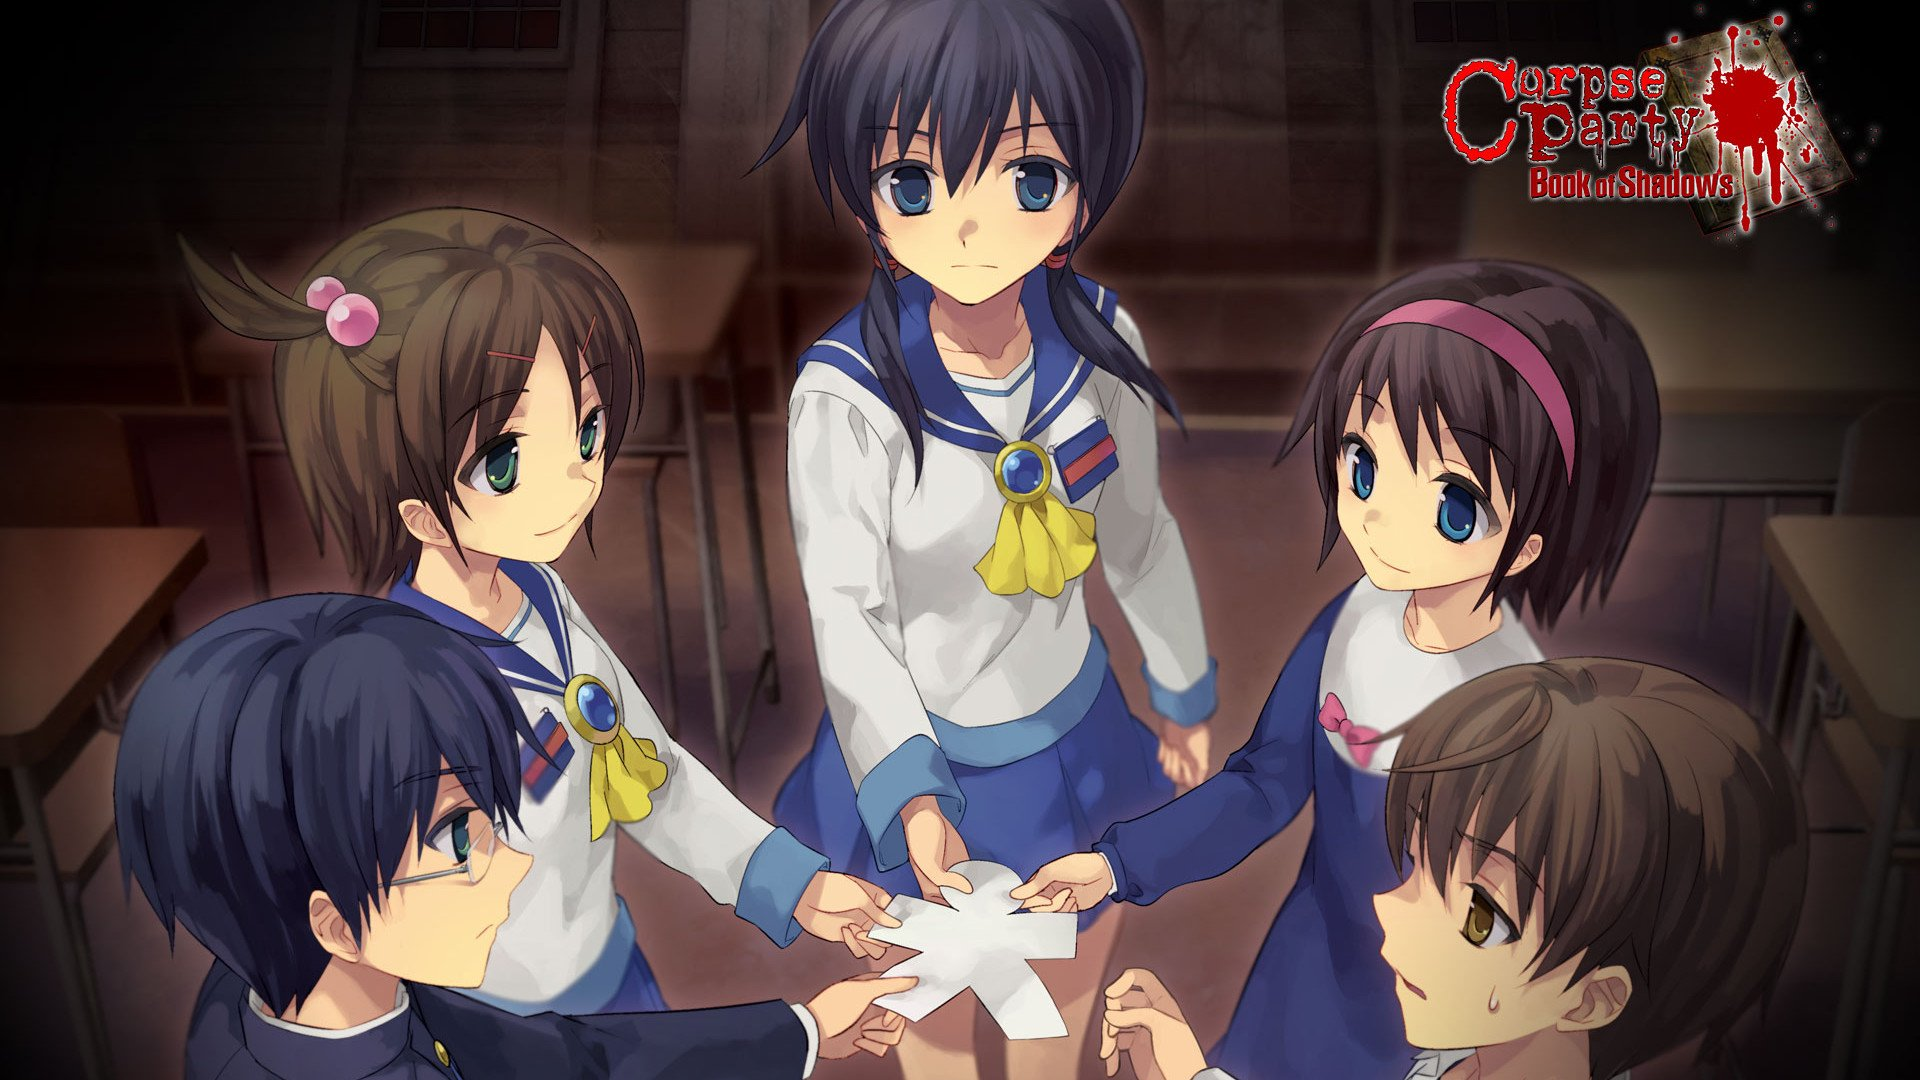 Corpse Party game